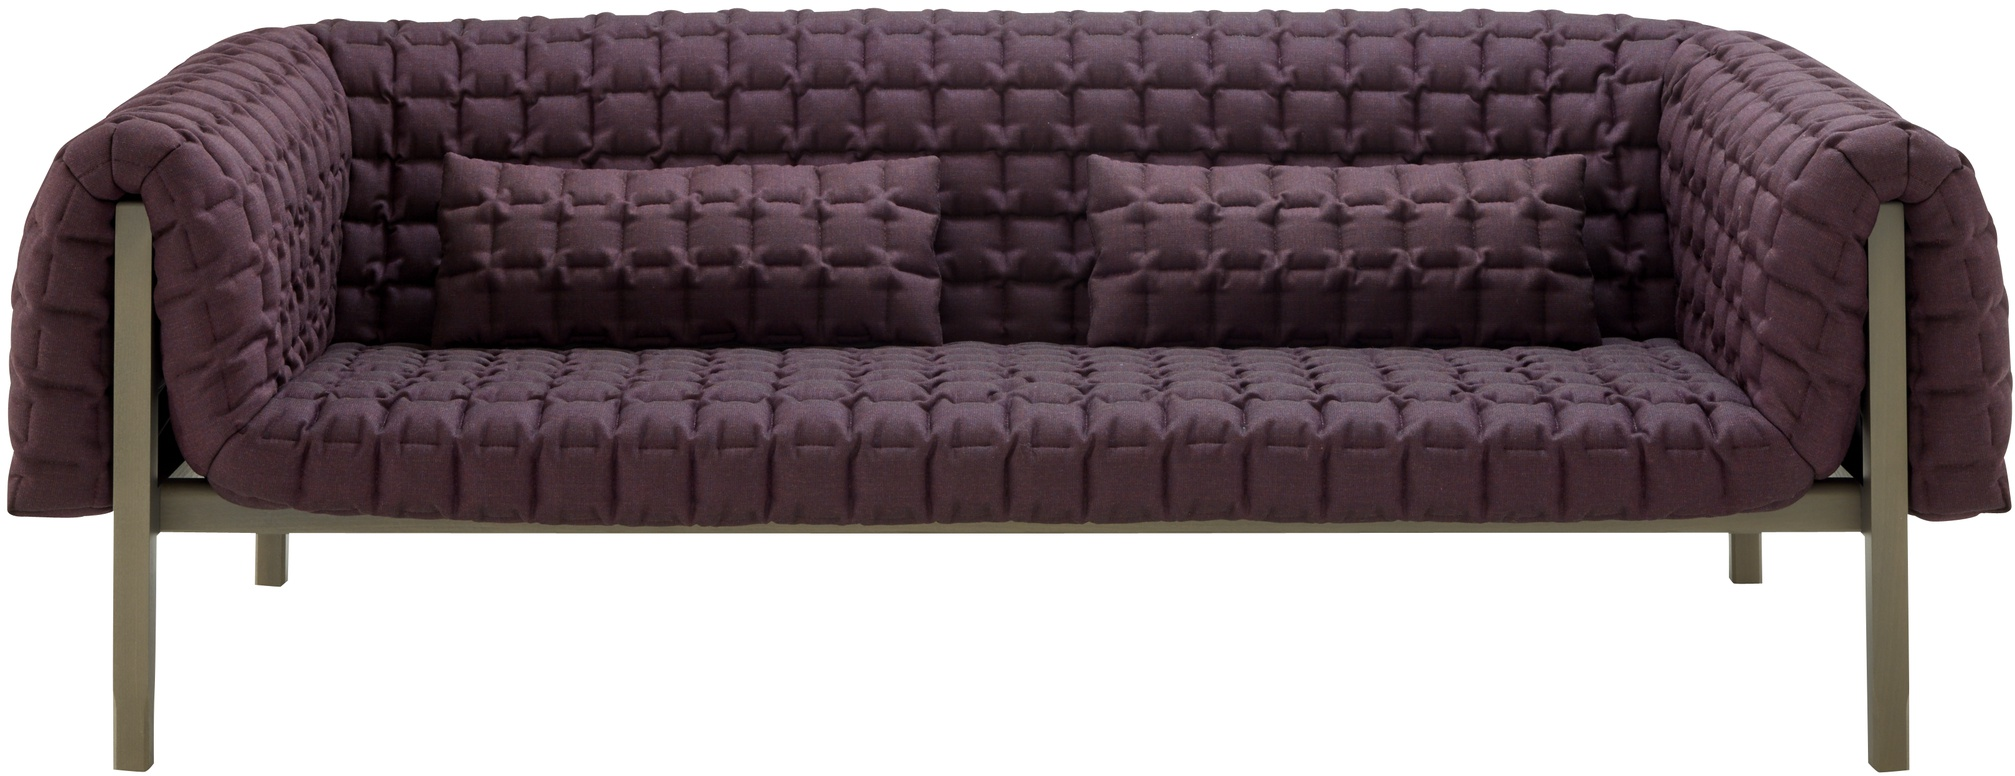 Yang Sofa Ligne Roset Design Plumy Sofa By Annie Hi